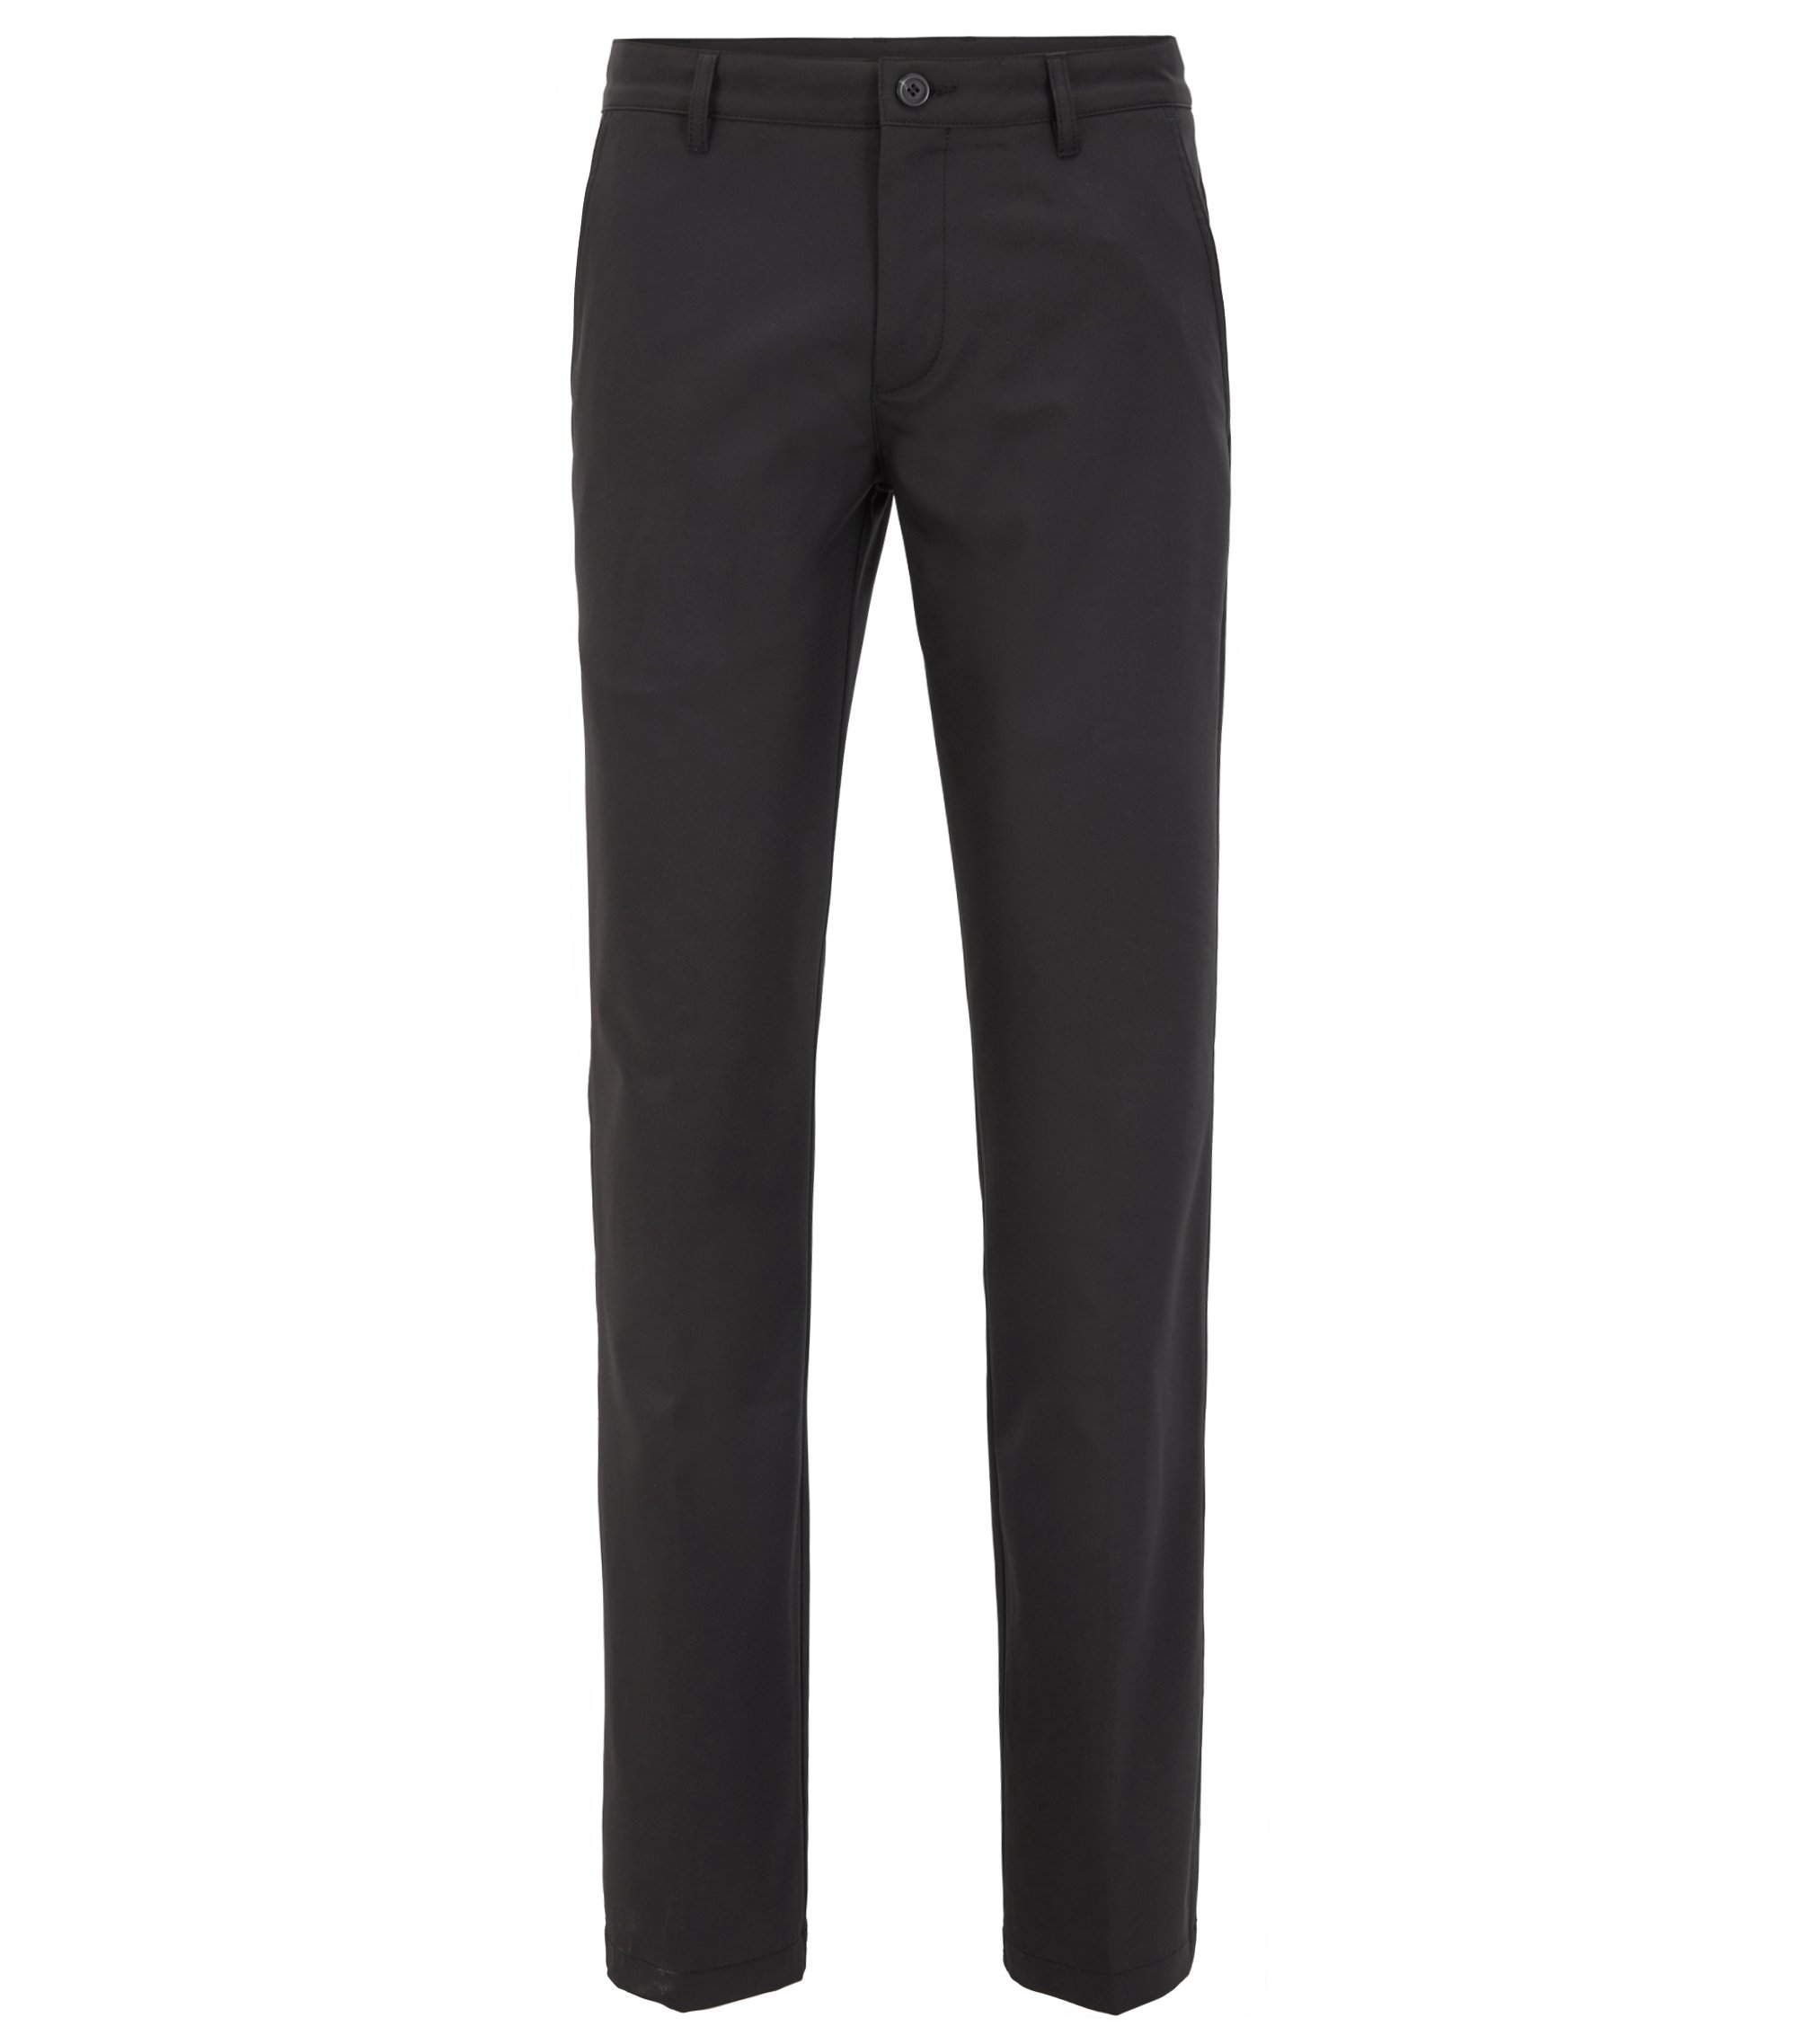 Pantalon de golf Slim Fit en twill technique, Noir